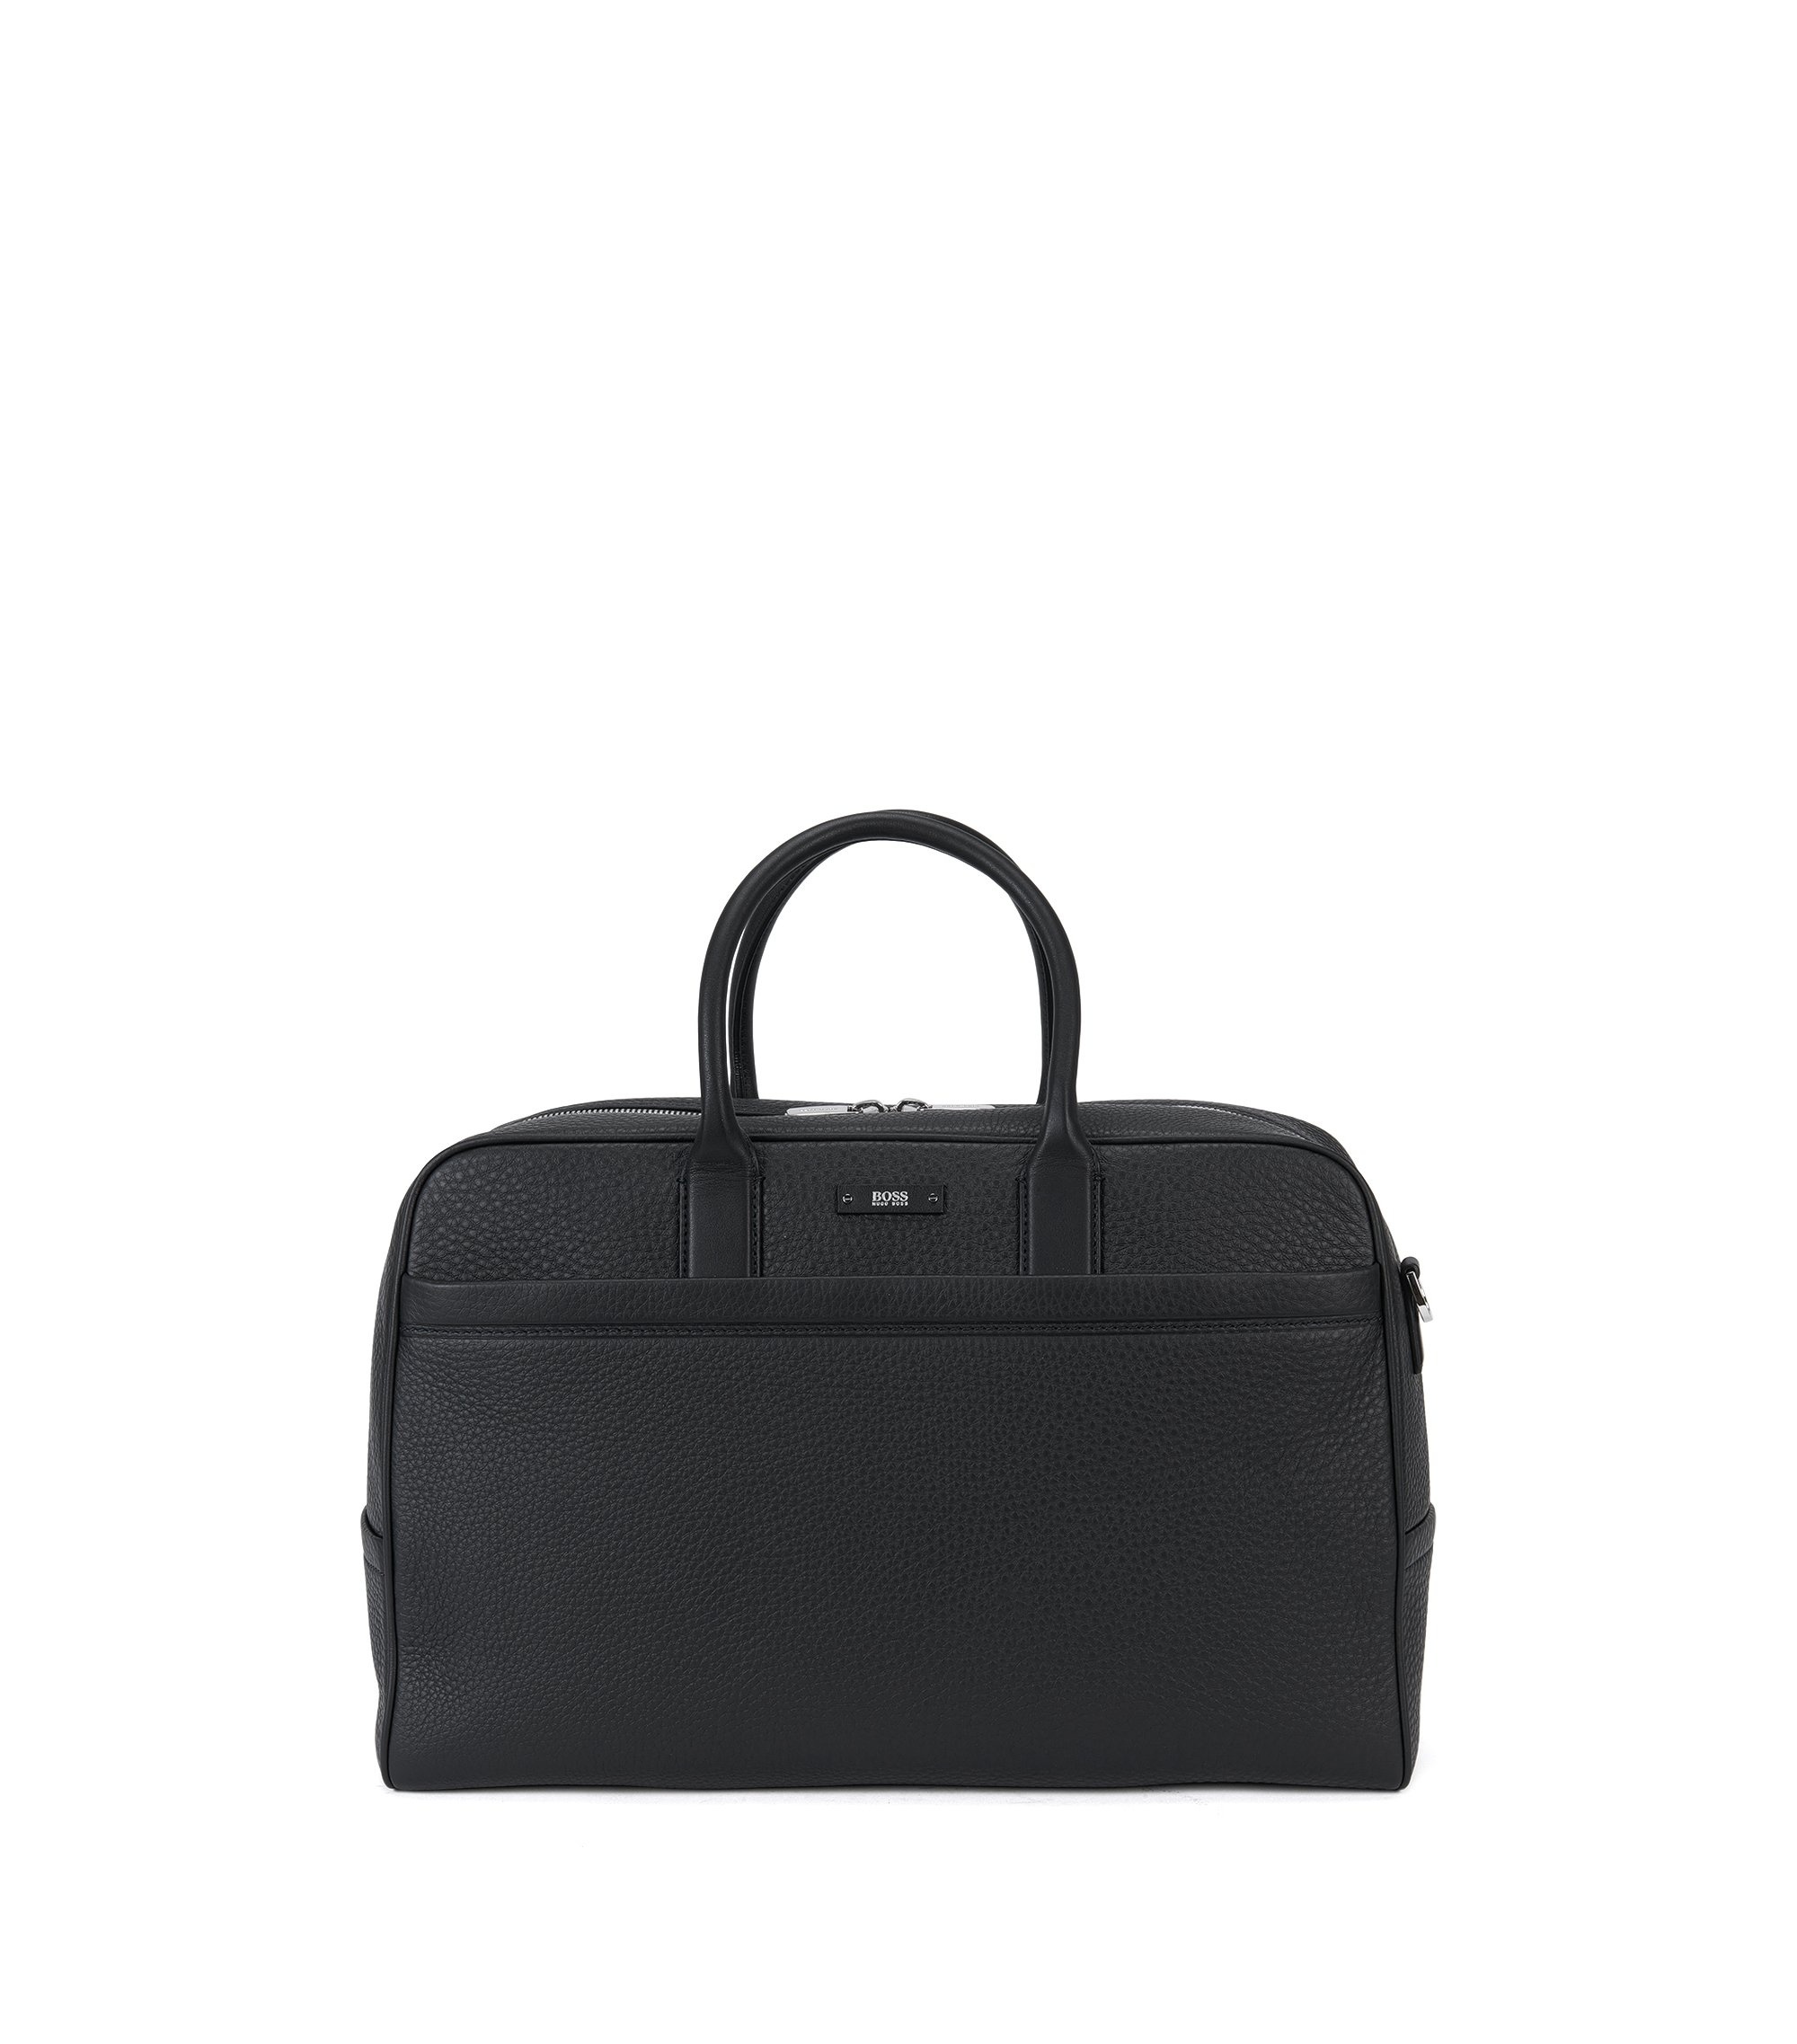 'Traveller Holdall' | Leather Weekender Bag, Detachable Shoulder Strap, Black